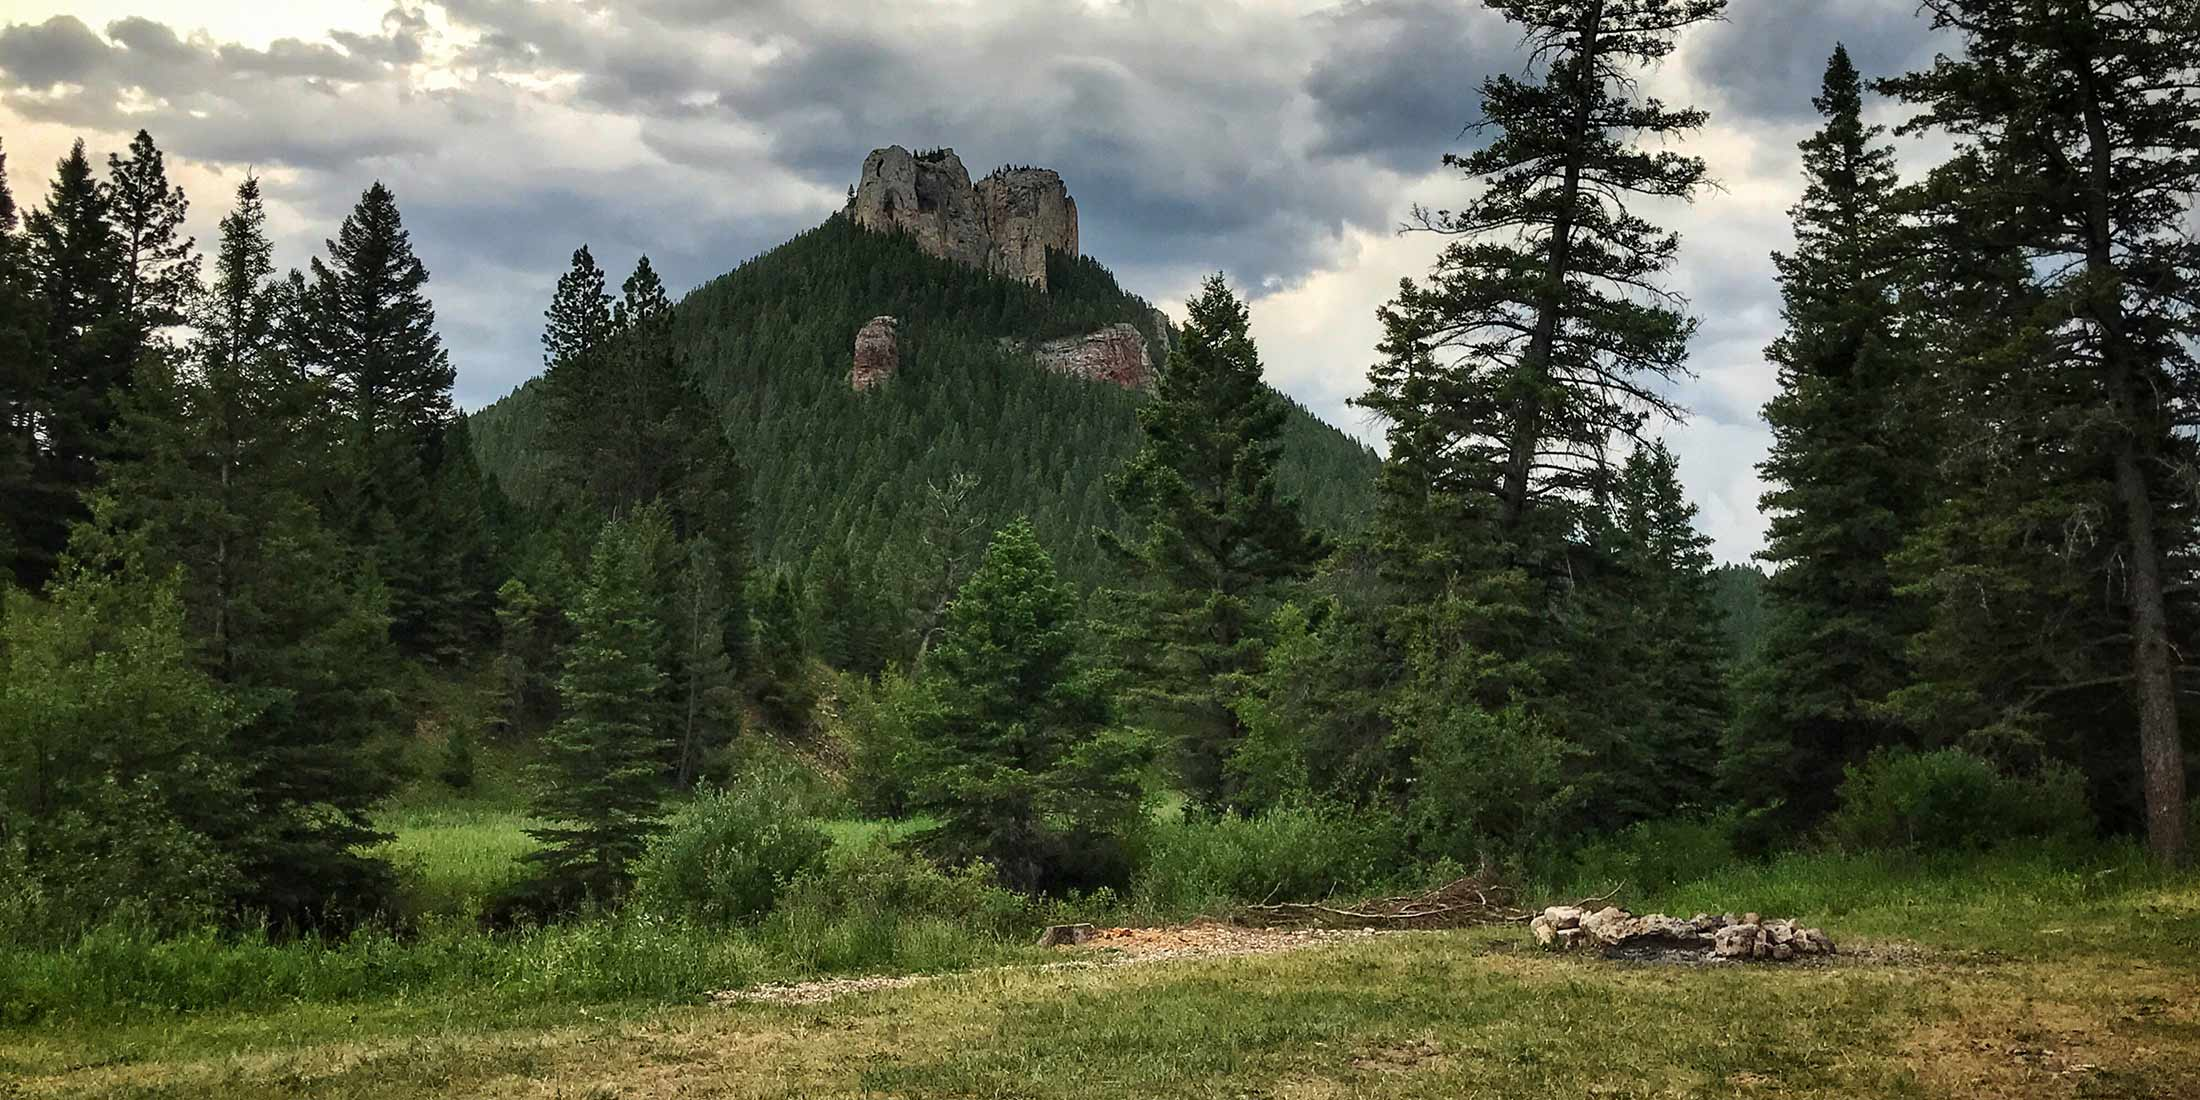 Information about Dry Pole Campground located in the Little Belt Mountain Range, Montana